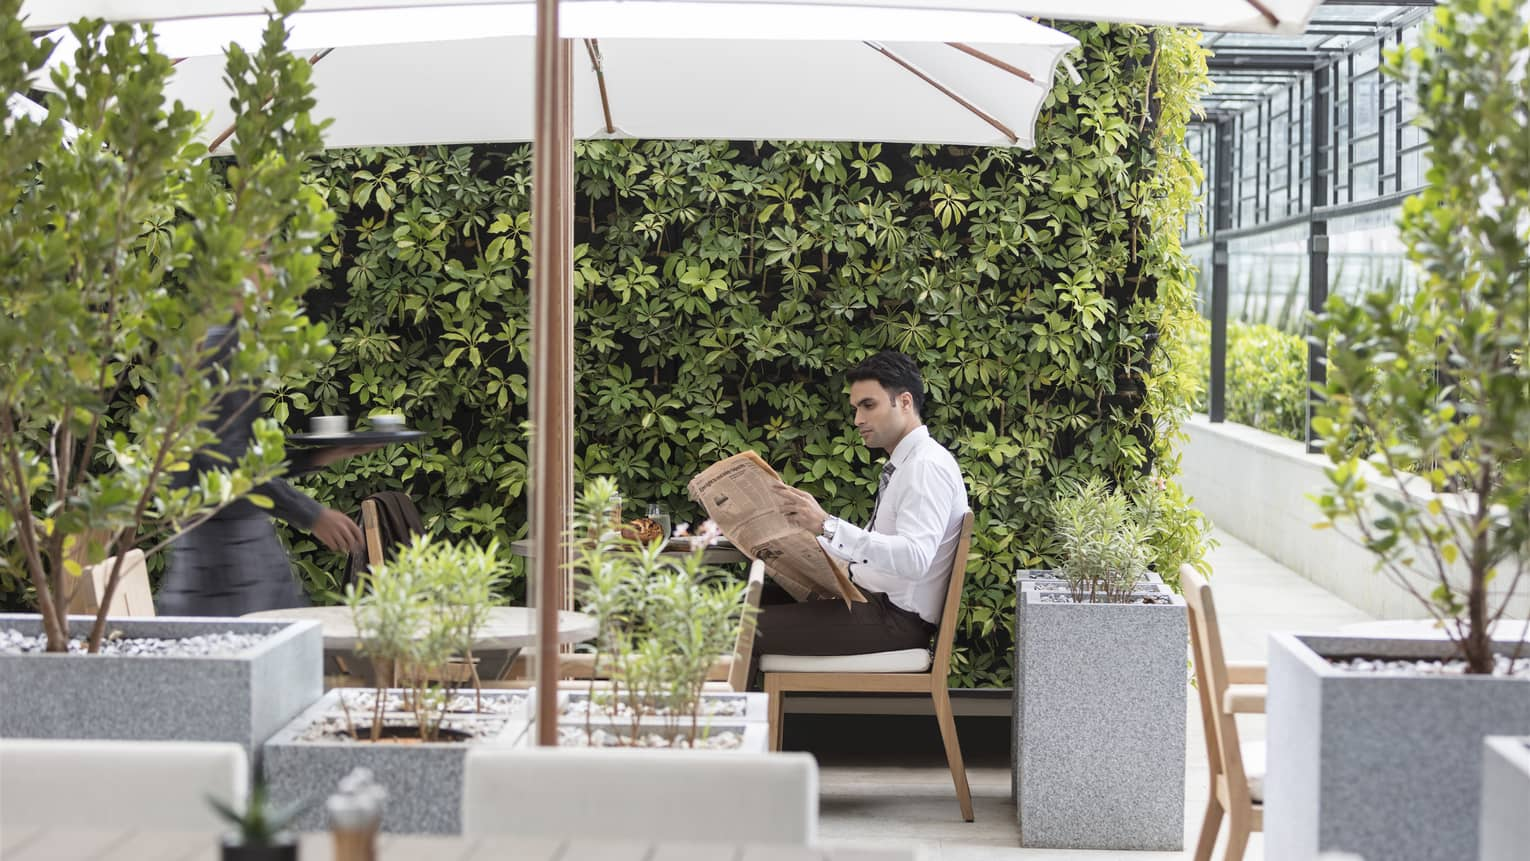 A guest reads a newspaper on an outdoor patio with foliage and umbrella covered tables.